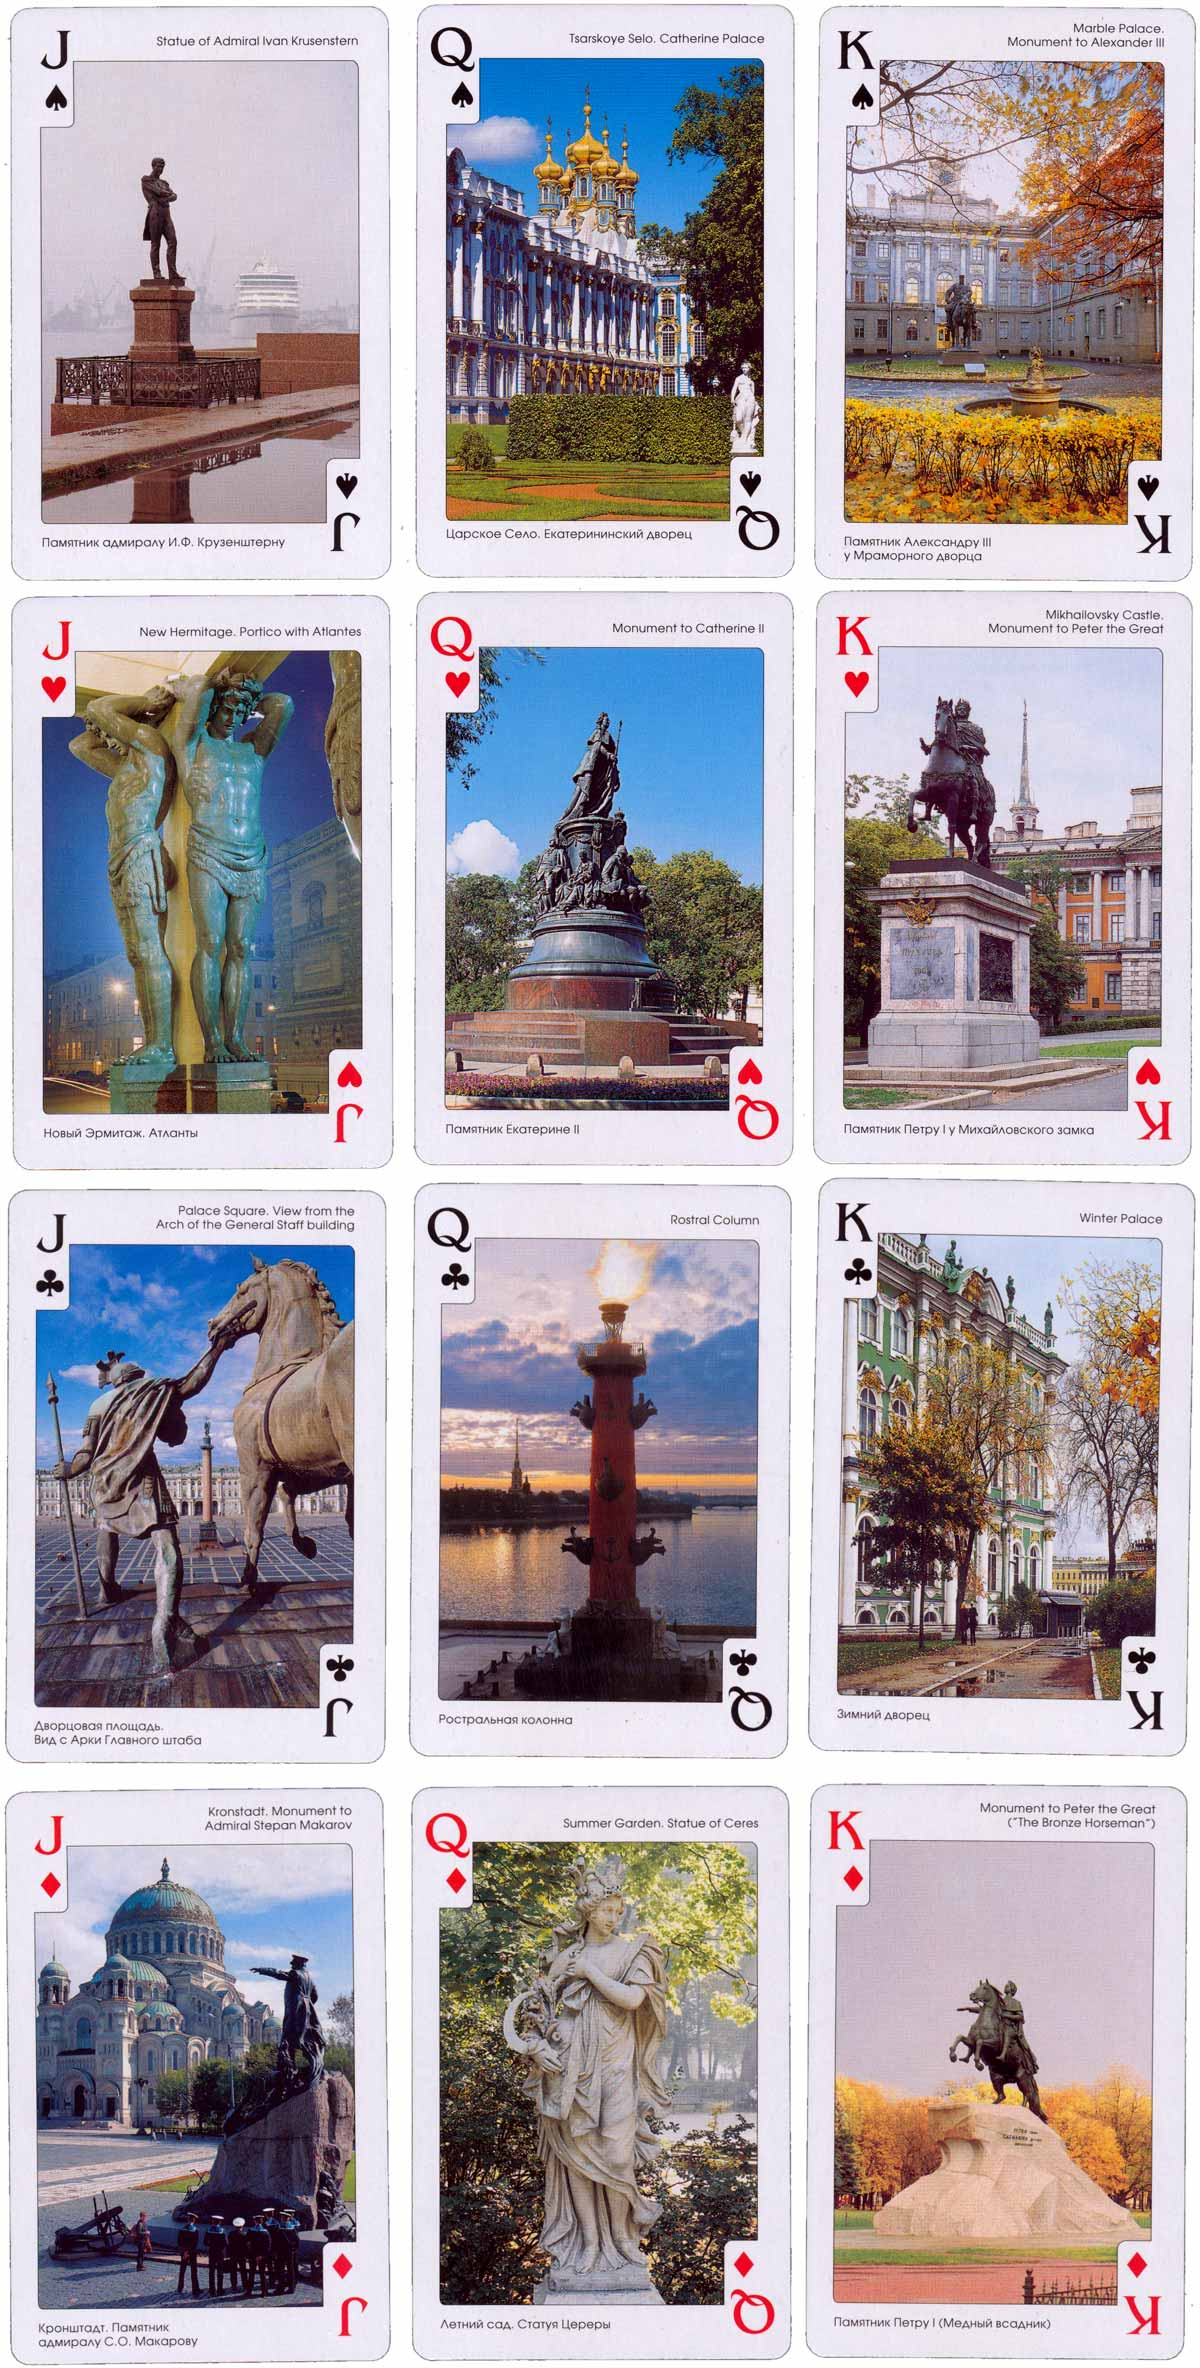 St Petersburg Souvenir playing cards, 2004